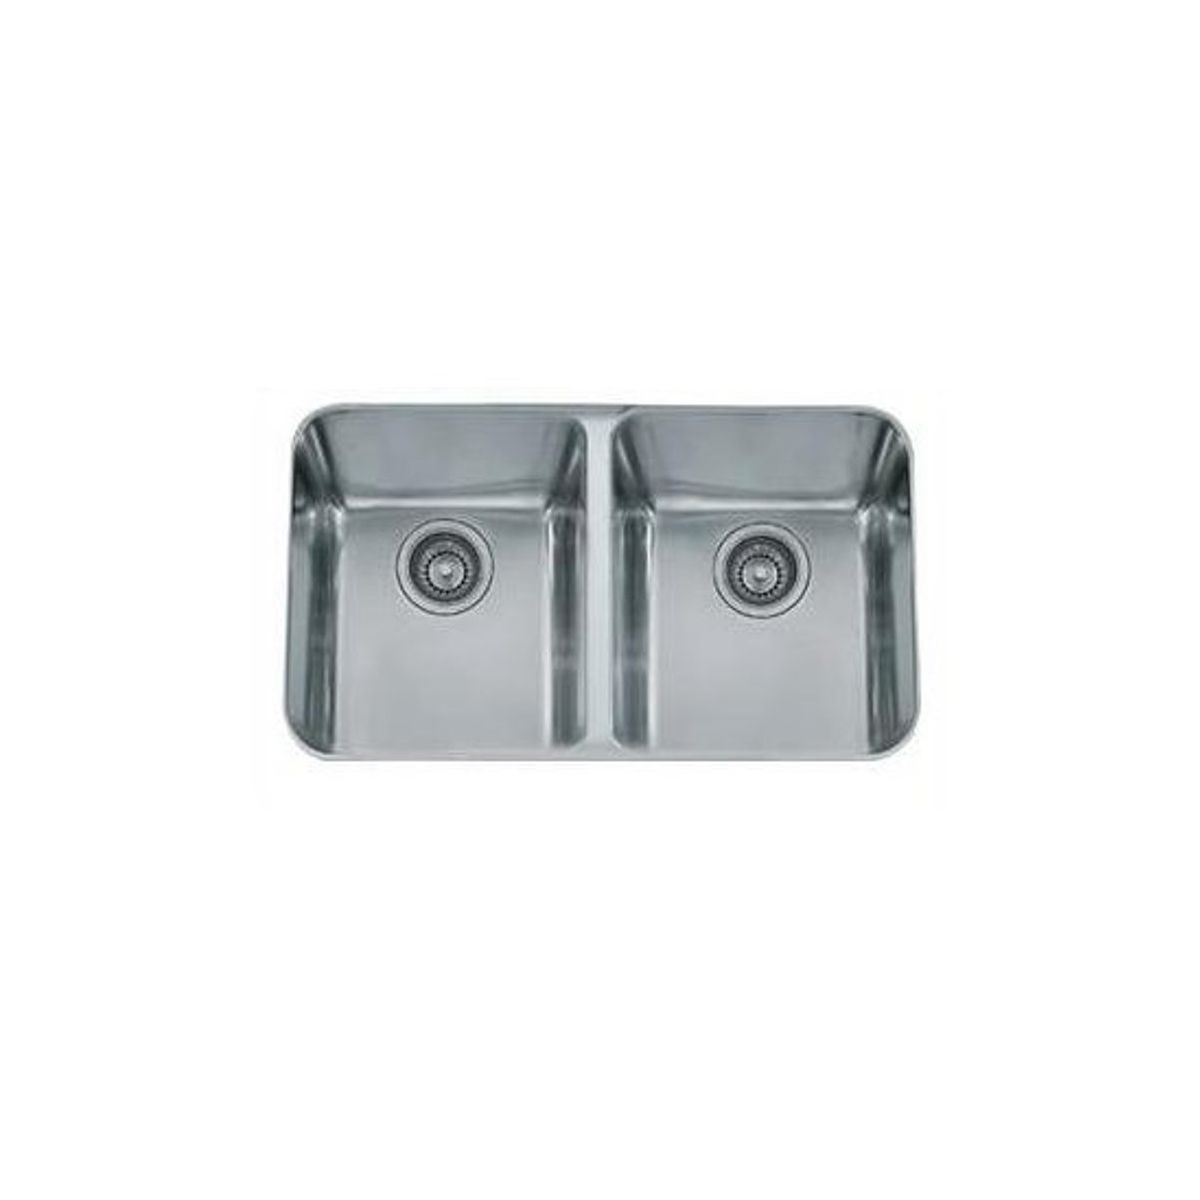 Explore Double Bowl Kitchen Sink and more